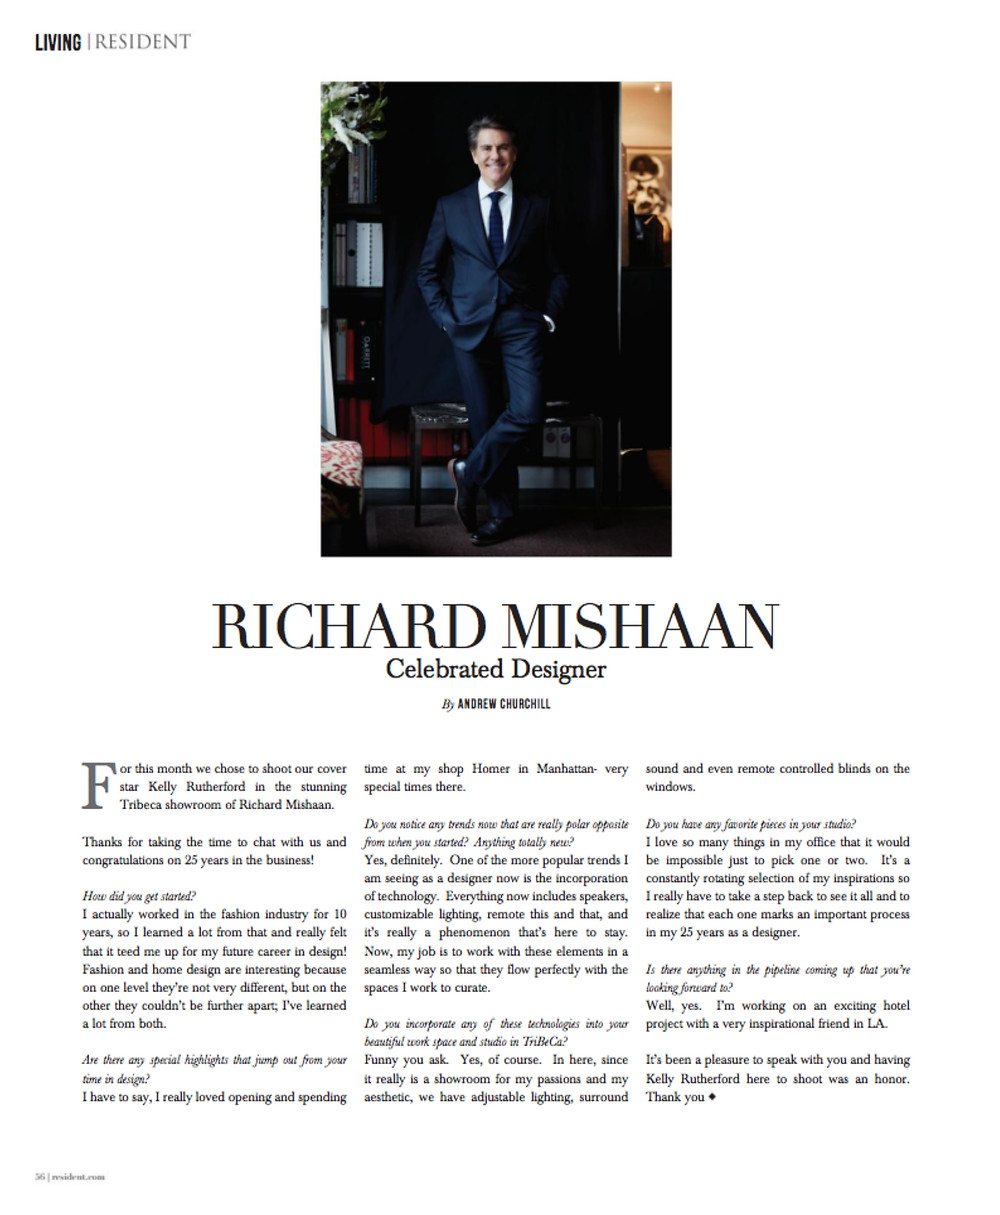 Richard Mishaan Design